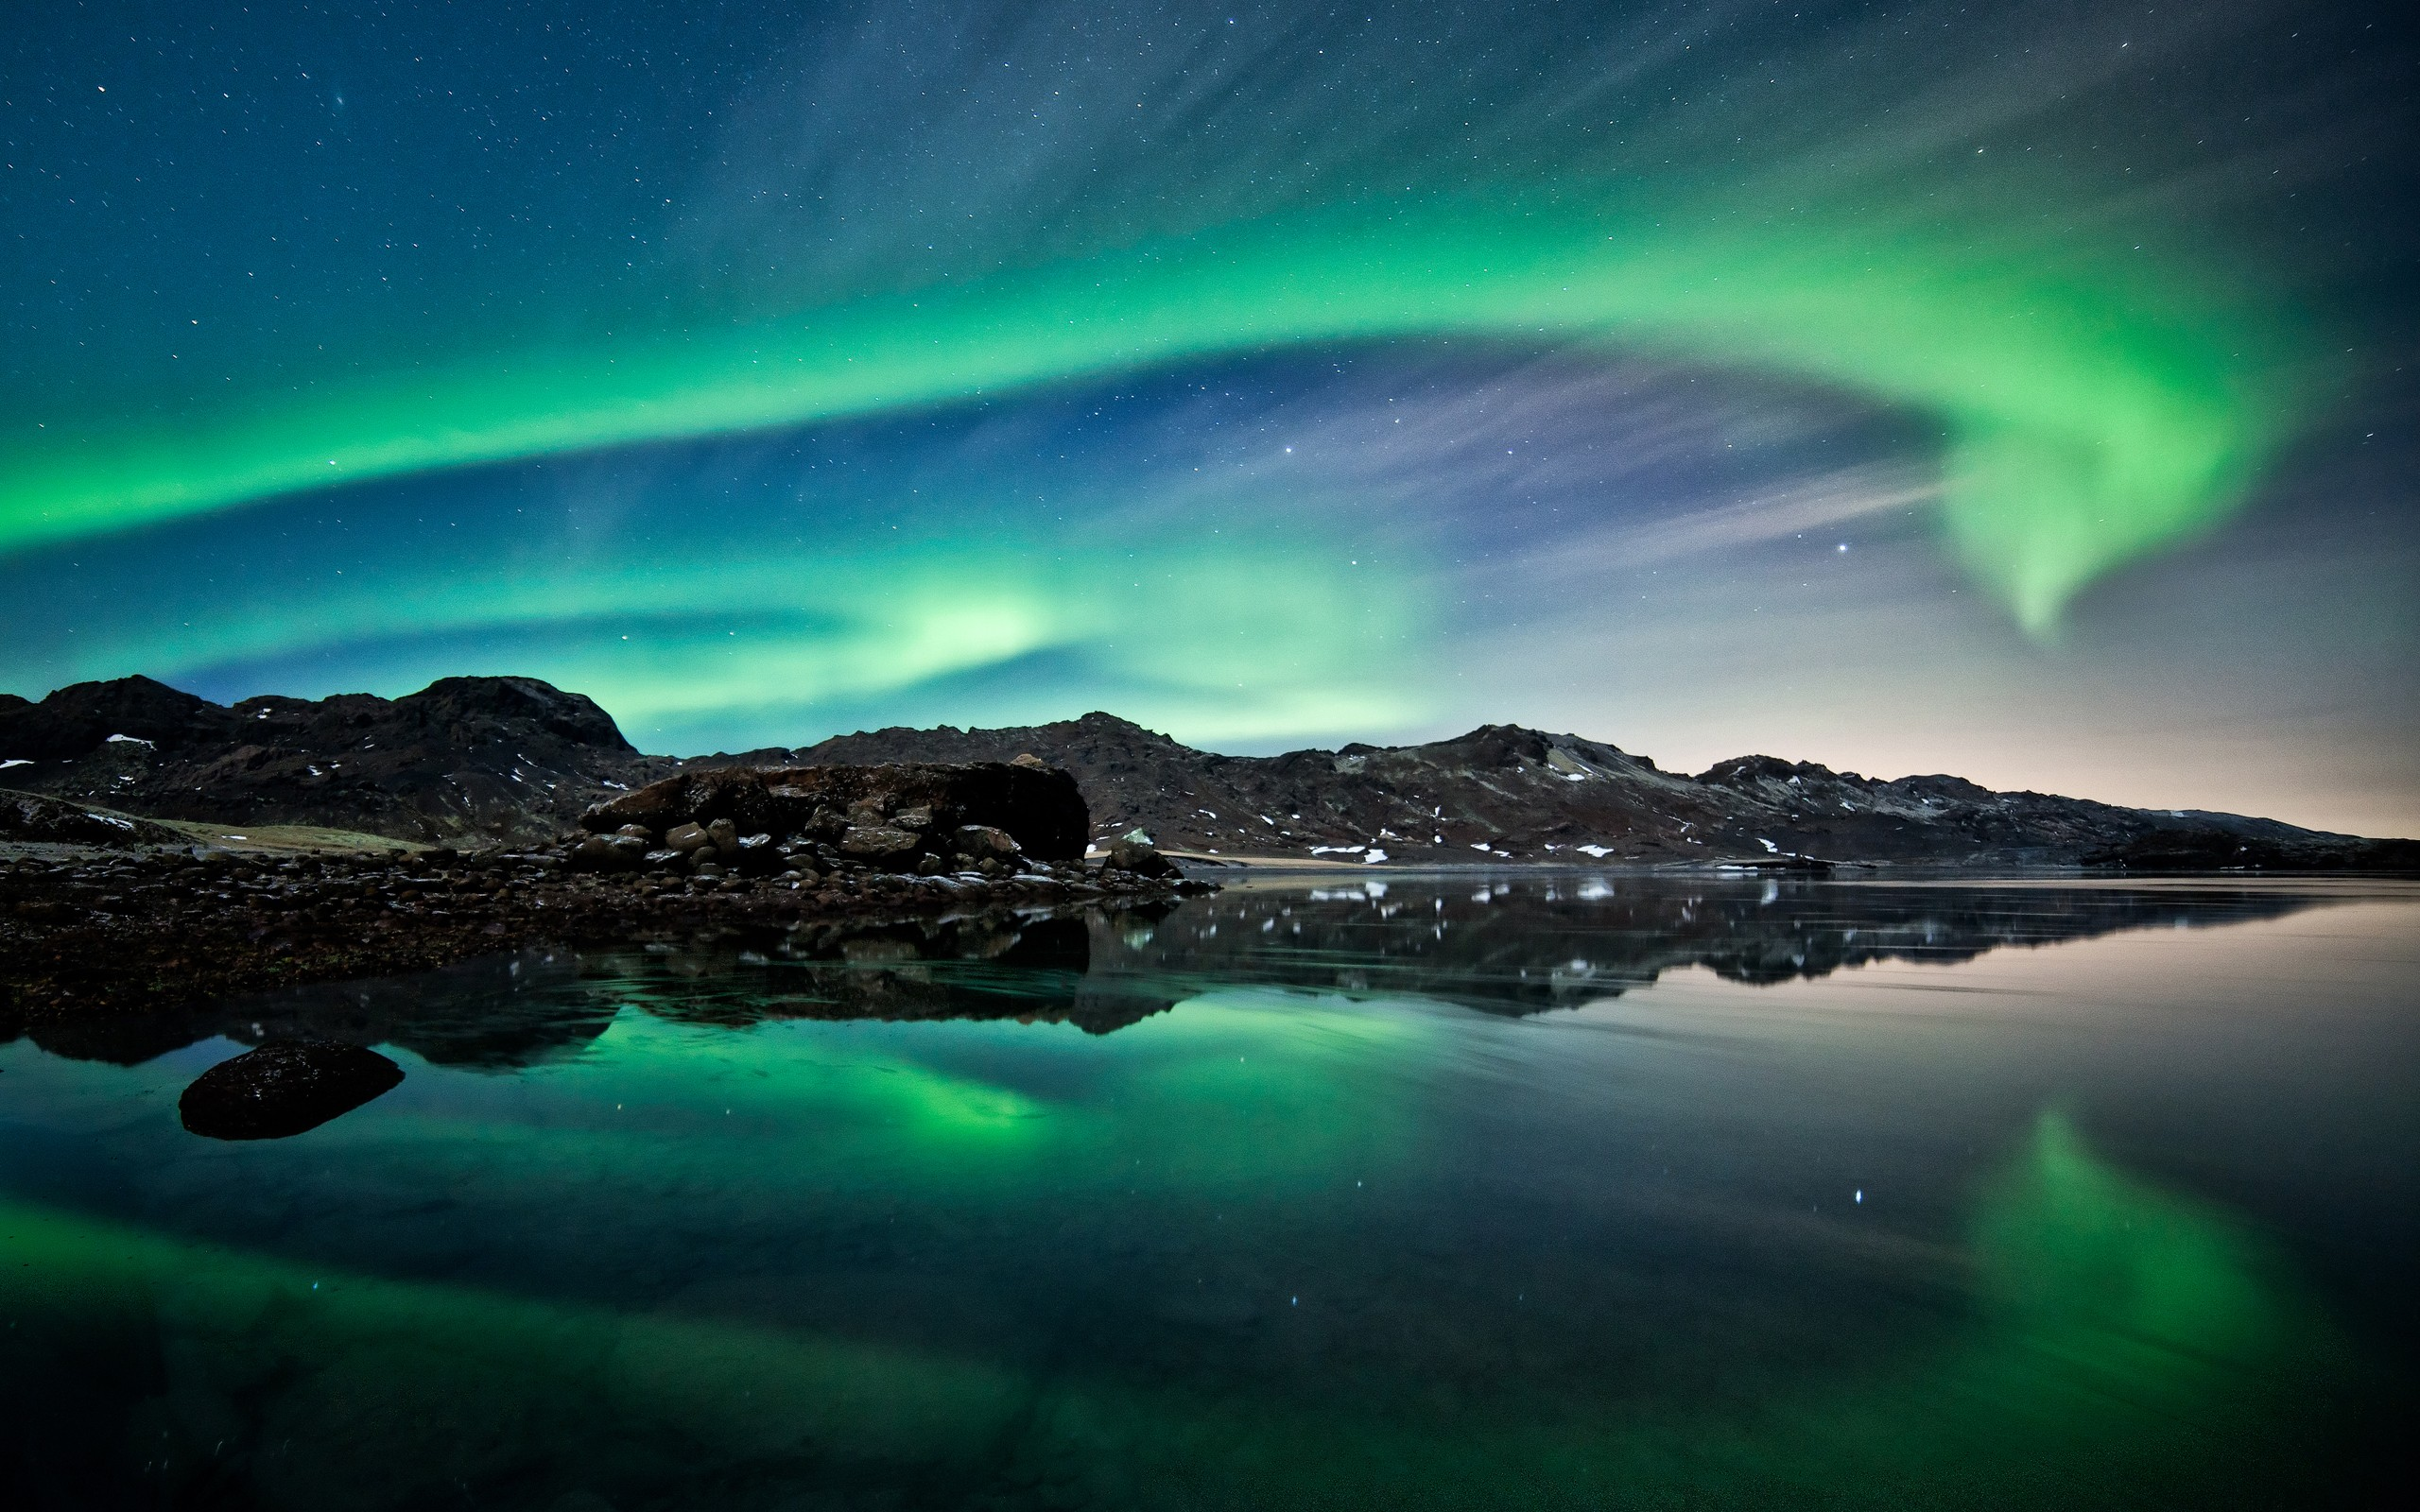 Download Wallpapers Of Good Quotes Daily Wallpaper Aurora Borealis I Like To Waste My Time